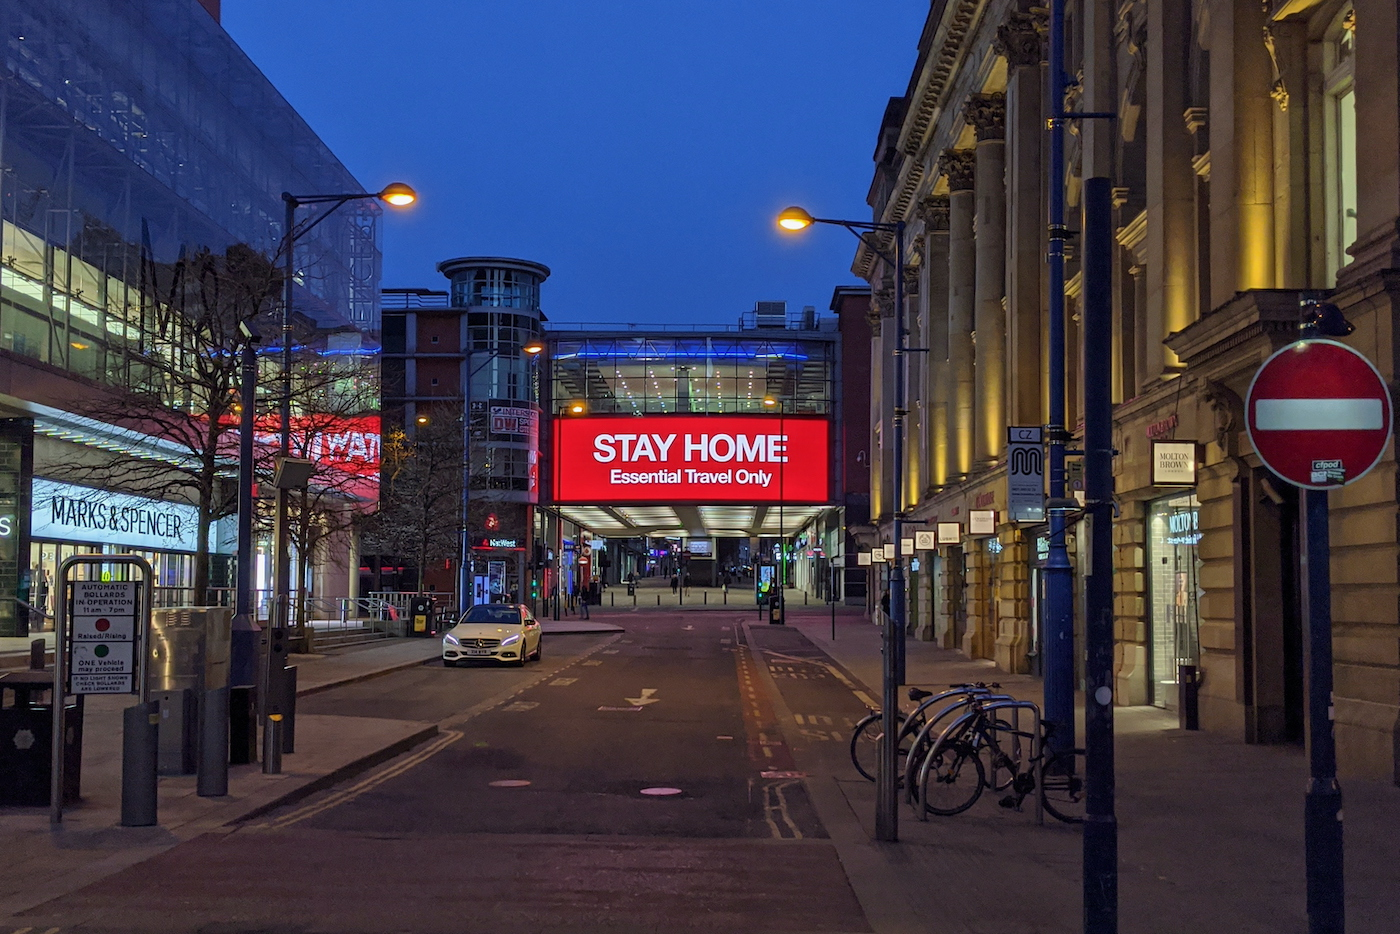 Sign in Manchester city centre displaying 'Stay Home'